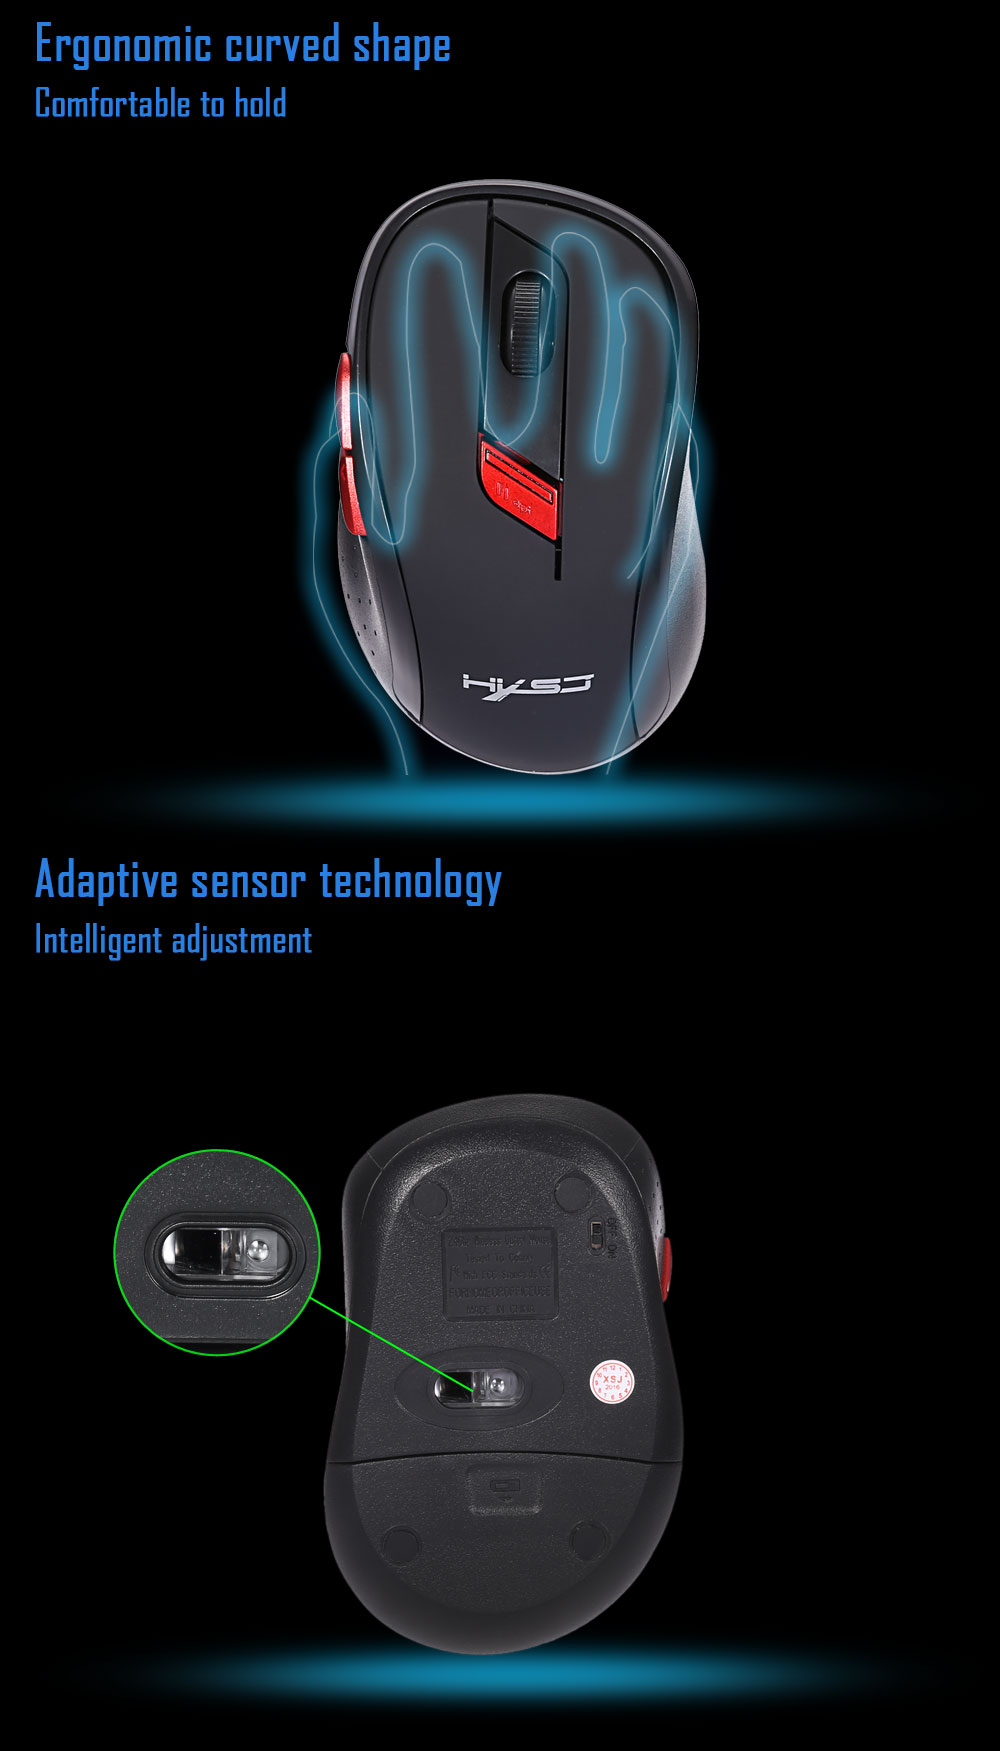 HXSJ X40 2.4GHz Wireless Optical Game Mouse with USB Receiver